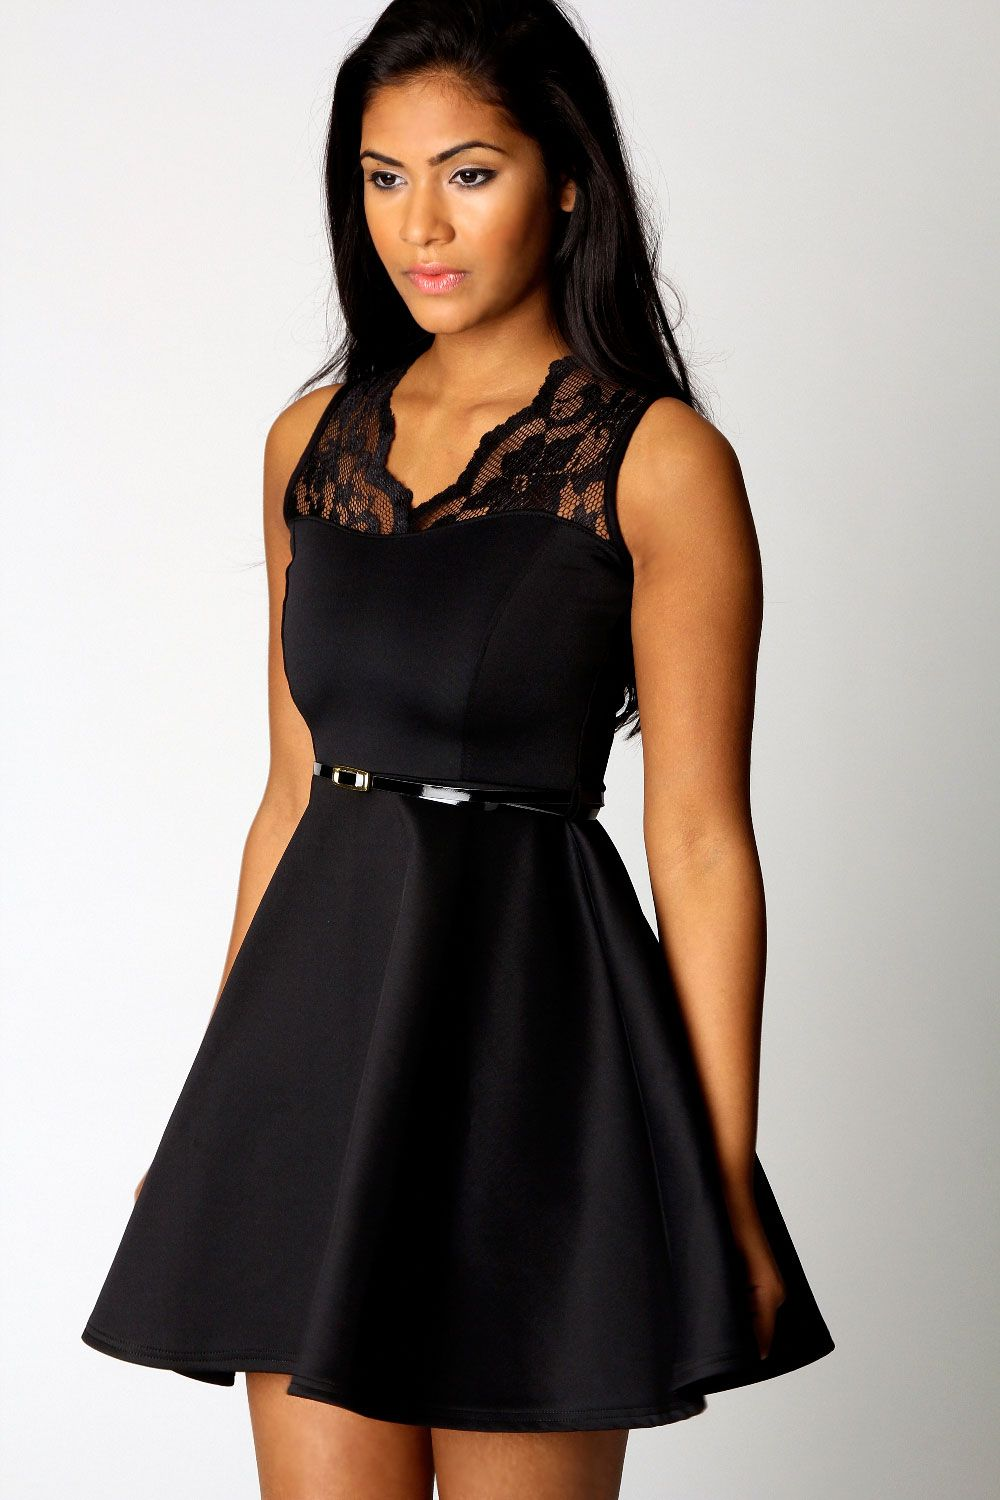 78  images about Black Lace Dress on Pinterest  Seasons Loose ...